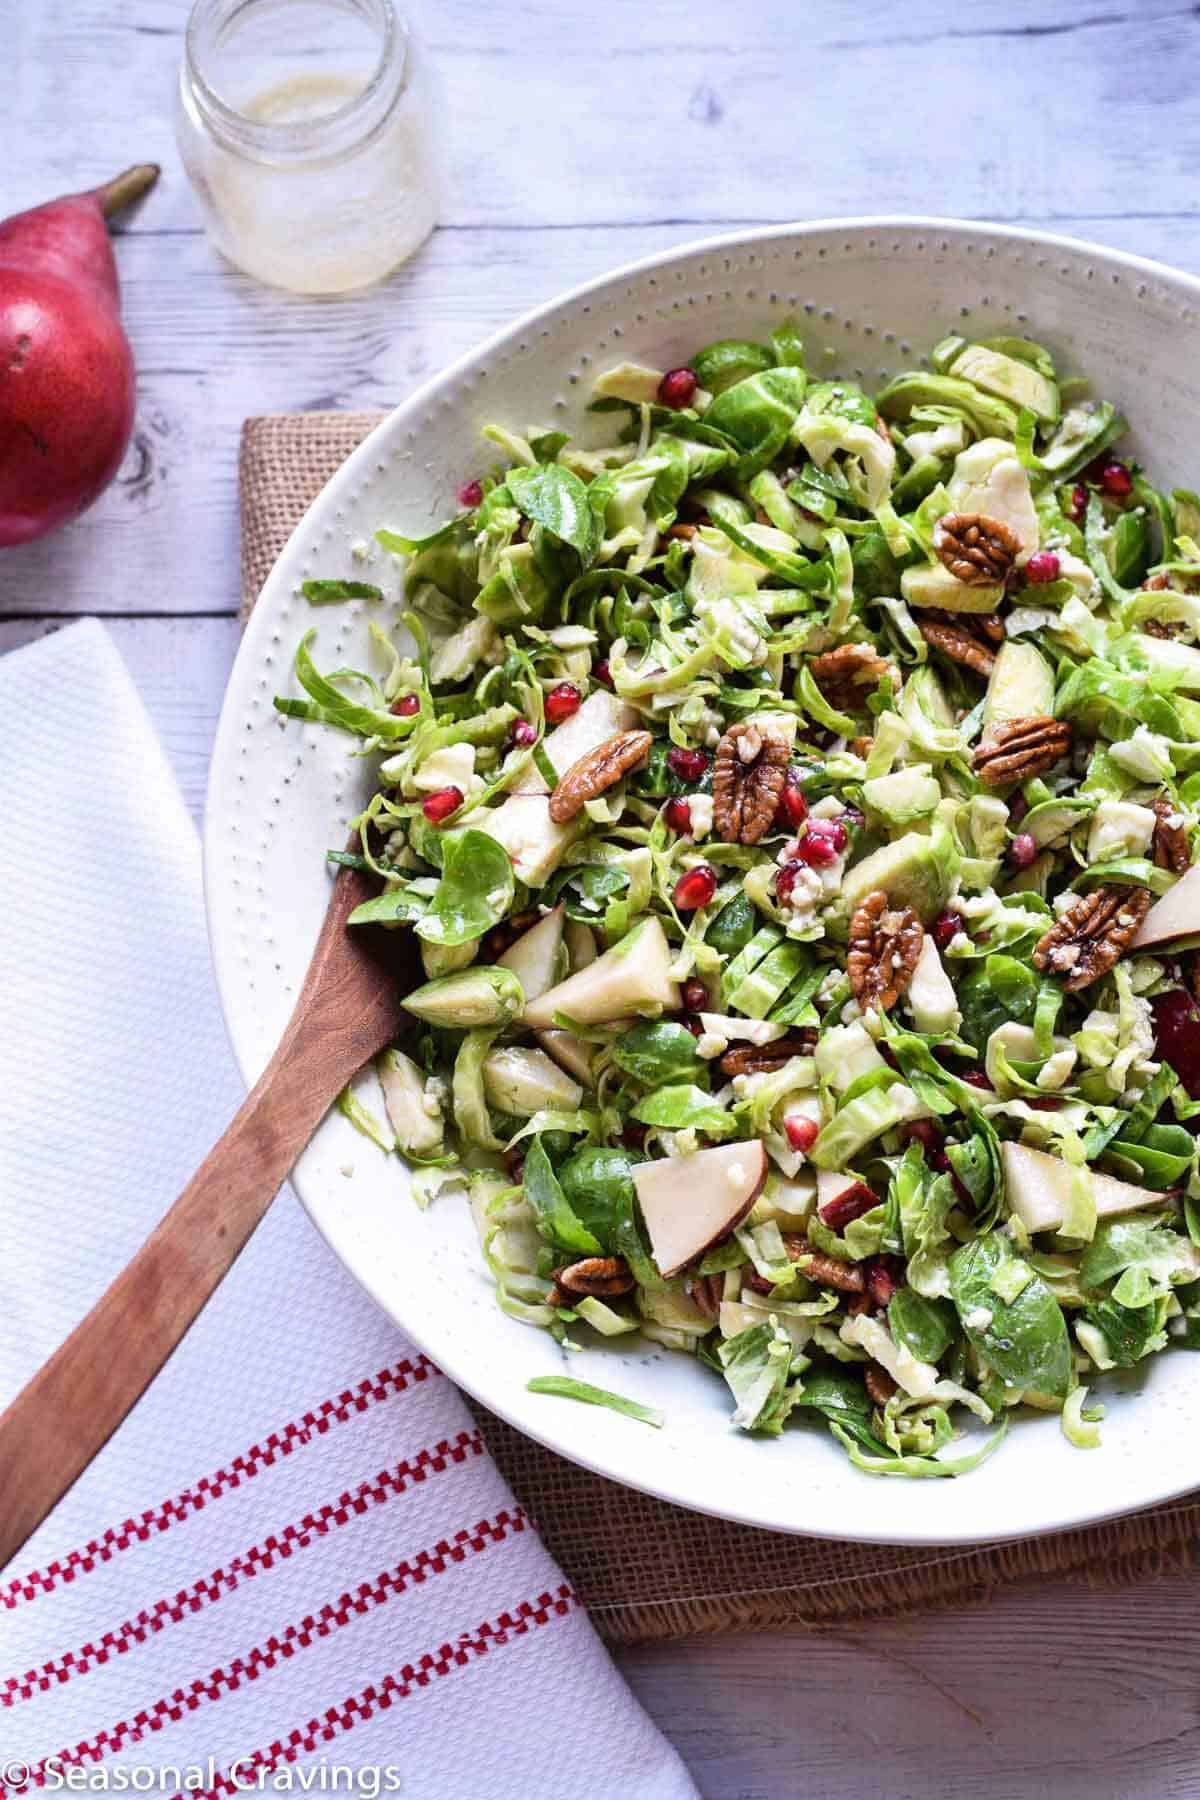 Brussels sprout salad + 15 Farmers market recipes to make in December! Delicious, autumn, winter, and holiday recipes made with fresh, seasonal produce from your local farmers market or CSA bin. Eat local!